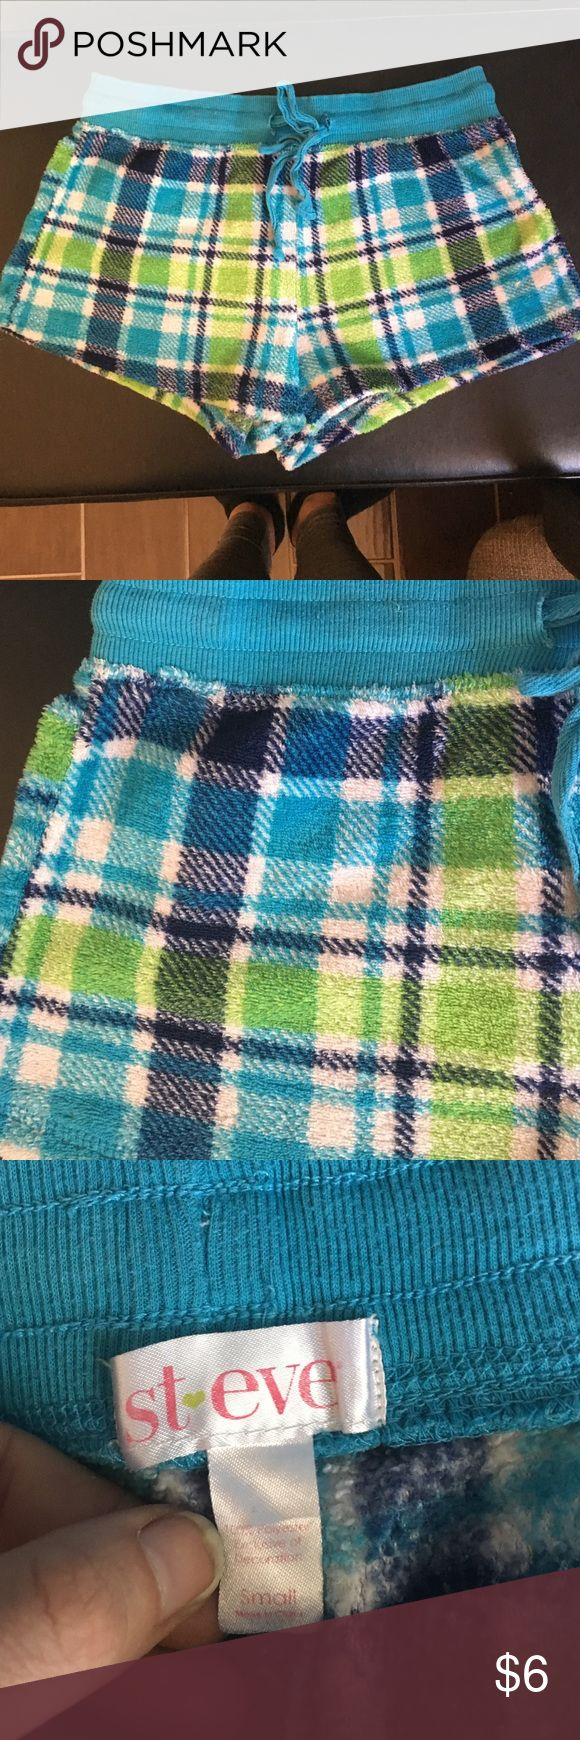 ST. EVE size S fleece pj shorts ST. EVE size S fleece pj shorts. Plaided with blues, green & white. Jaw-string around waist to tighten as needed. st eve Intimates & Sleepwear Pajamas